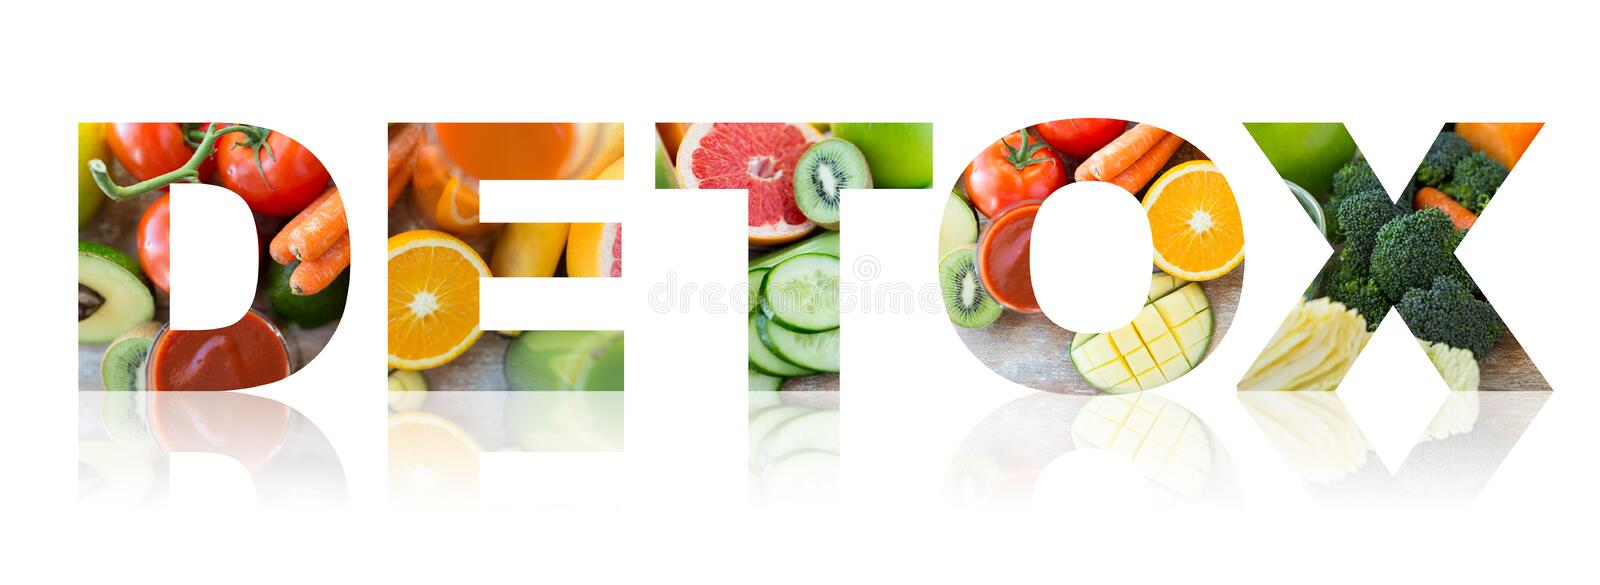 Detox, healthy eating and vegetarian diet concept. Healthy eating and vegetarian diet concept - word detox with juice, fruits and vegetables vector illustration